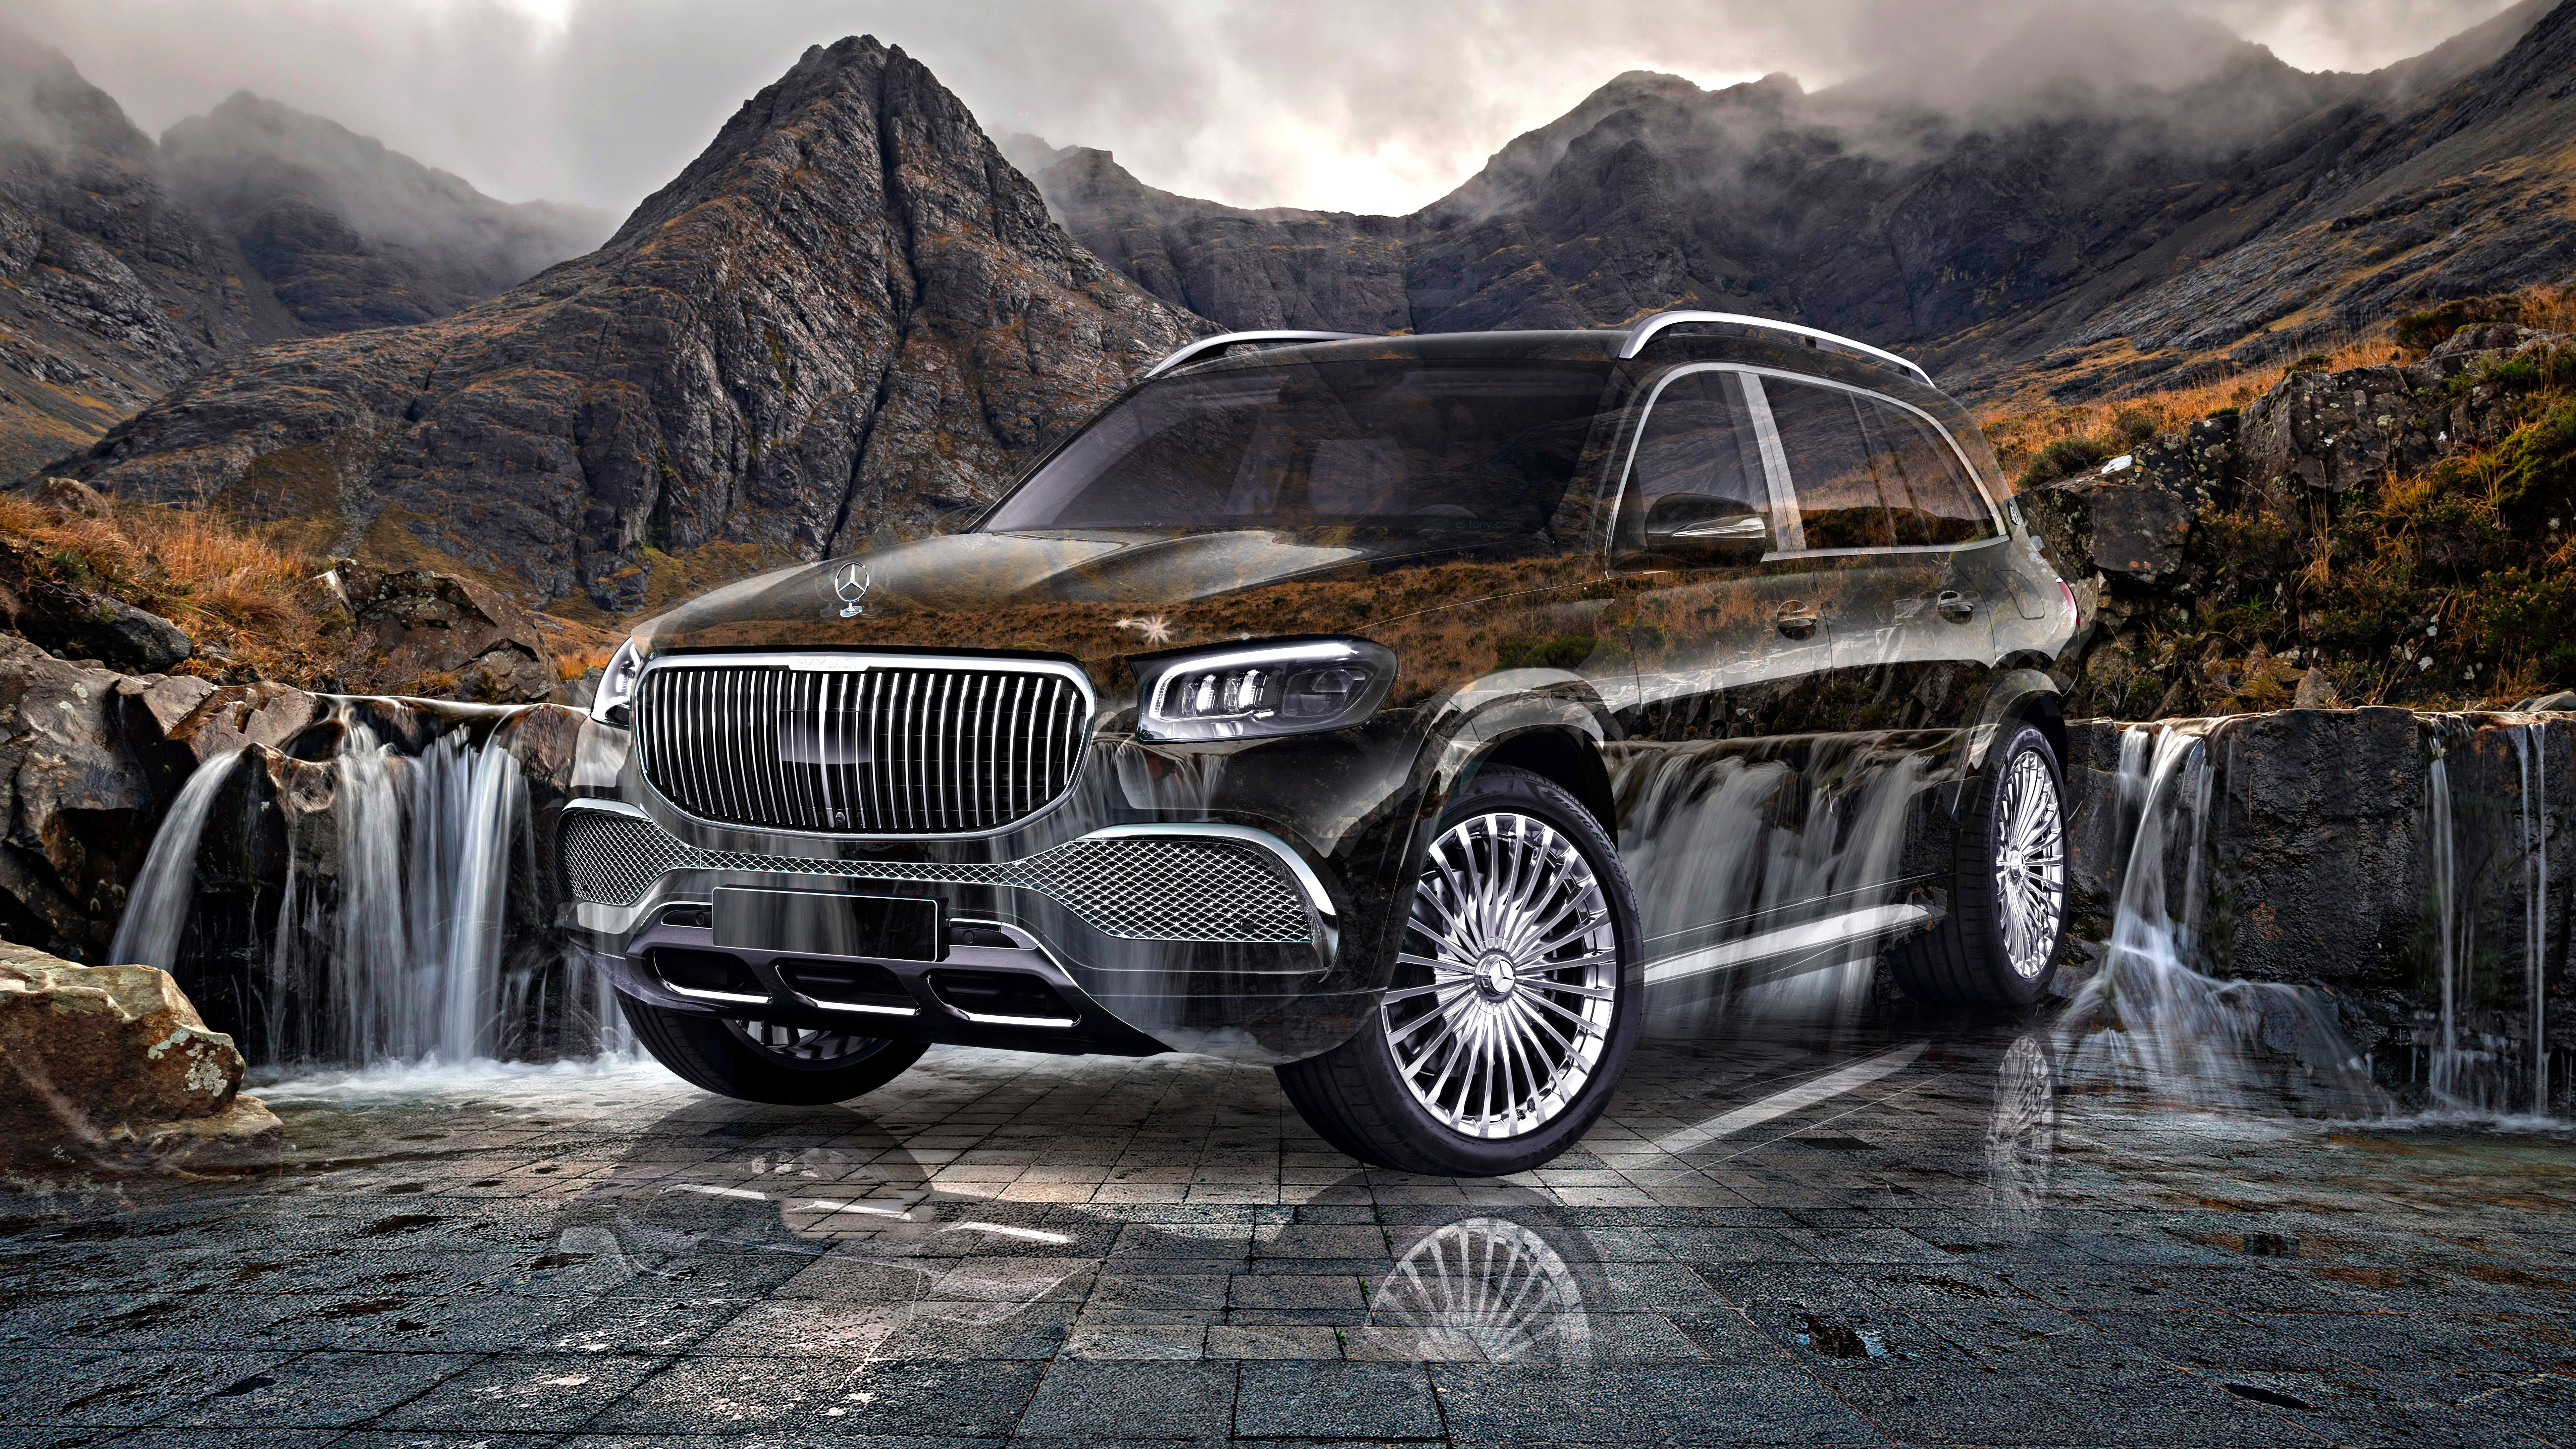 Mercedes-Benz-Maybach-GLS-600-Super-Crystal-Sleep-Soul-Coalpit-Waterfall-Mountains-Tactile-Hologram-Car-2021-Multicolors-8K-Wallpapers-by-Tony-Kokhan-www.el-tony.com-image